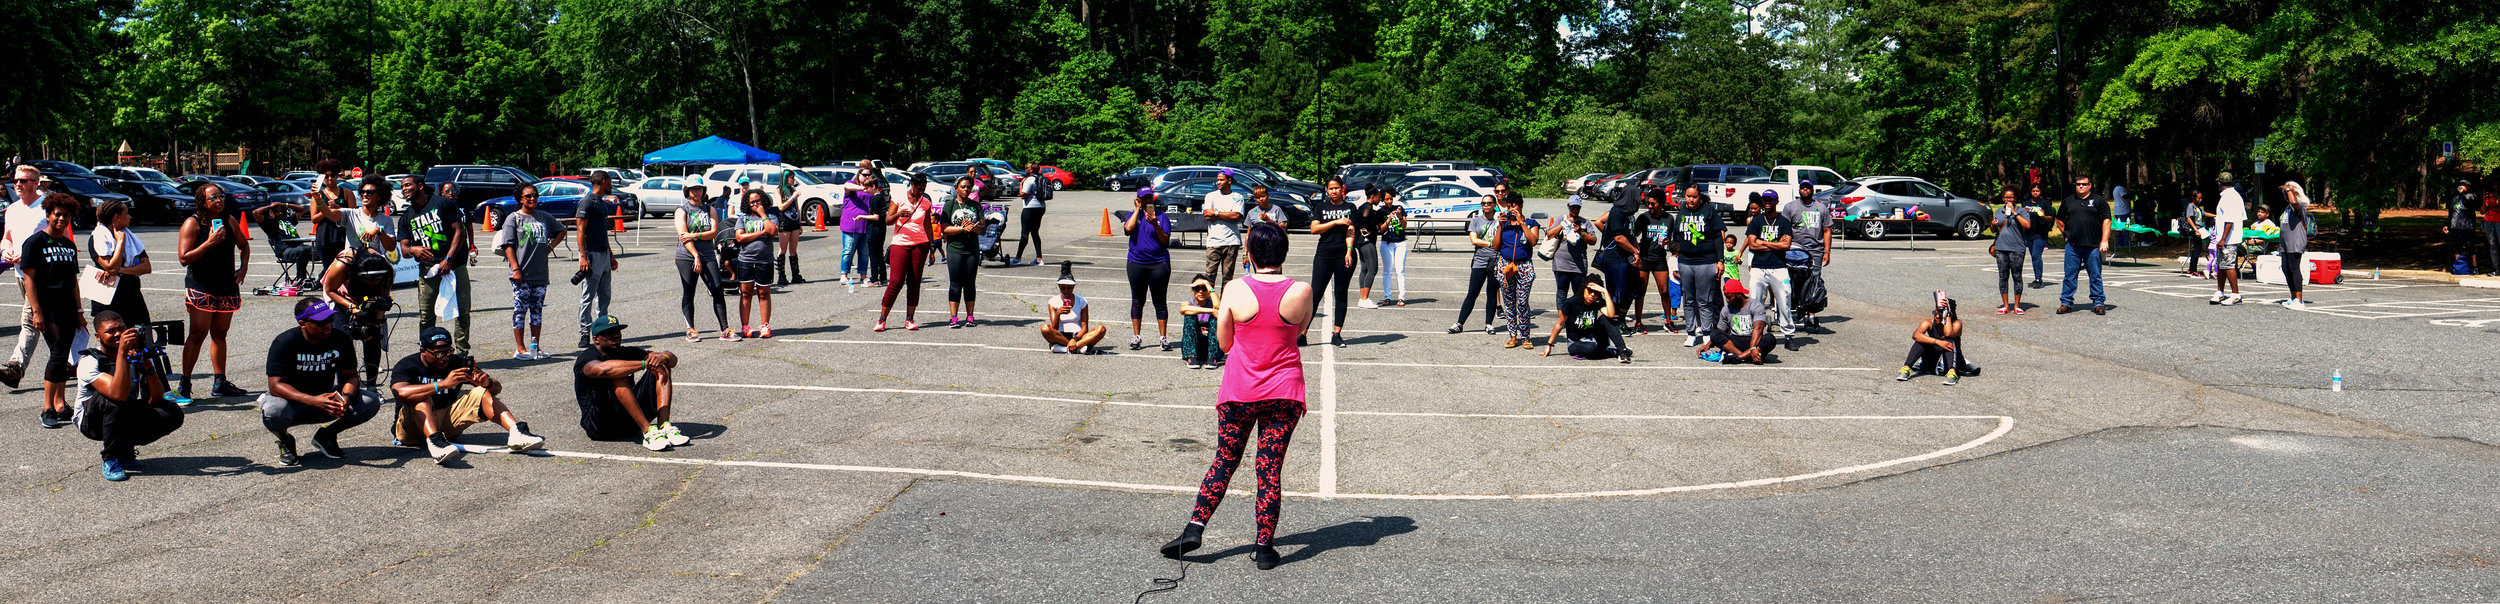 2nd Annual Let's Talk About It Mental Health Awareness Walk @ Park Rd Park 5-20-17 by Jon Strayhorn 113.jpg